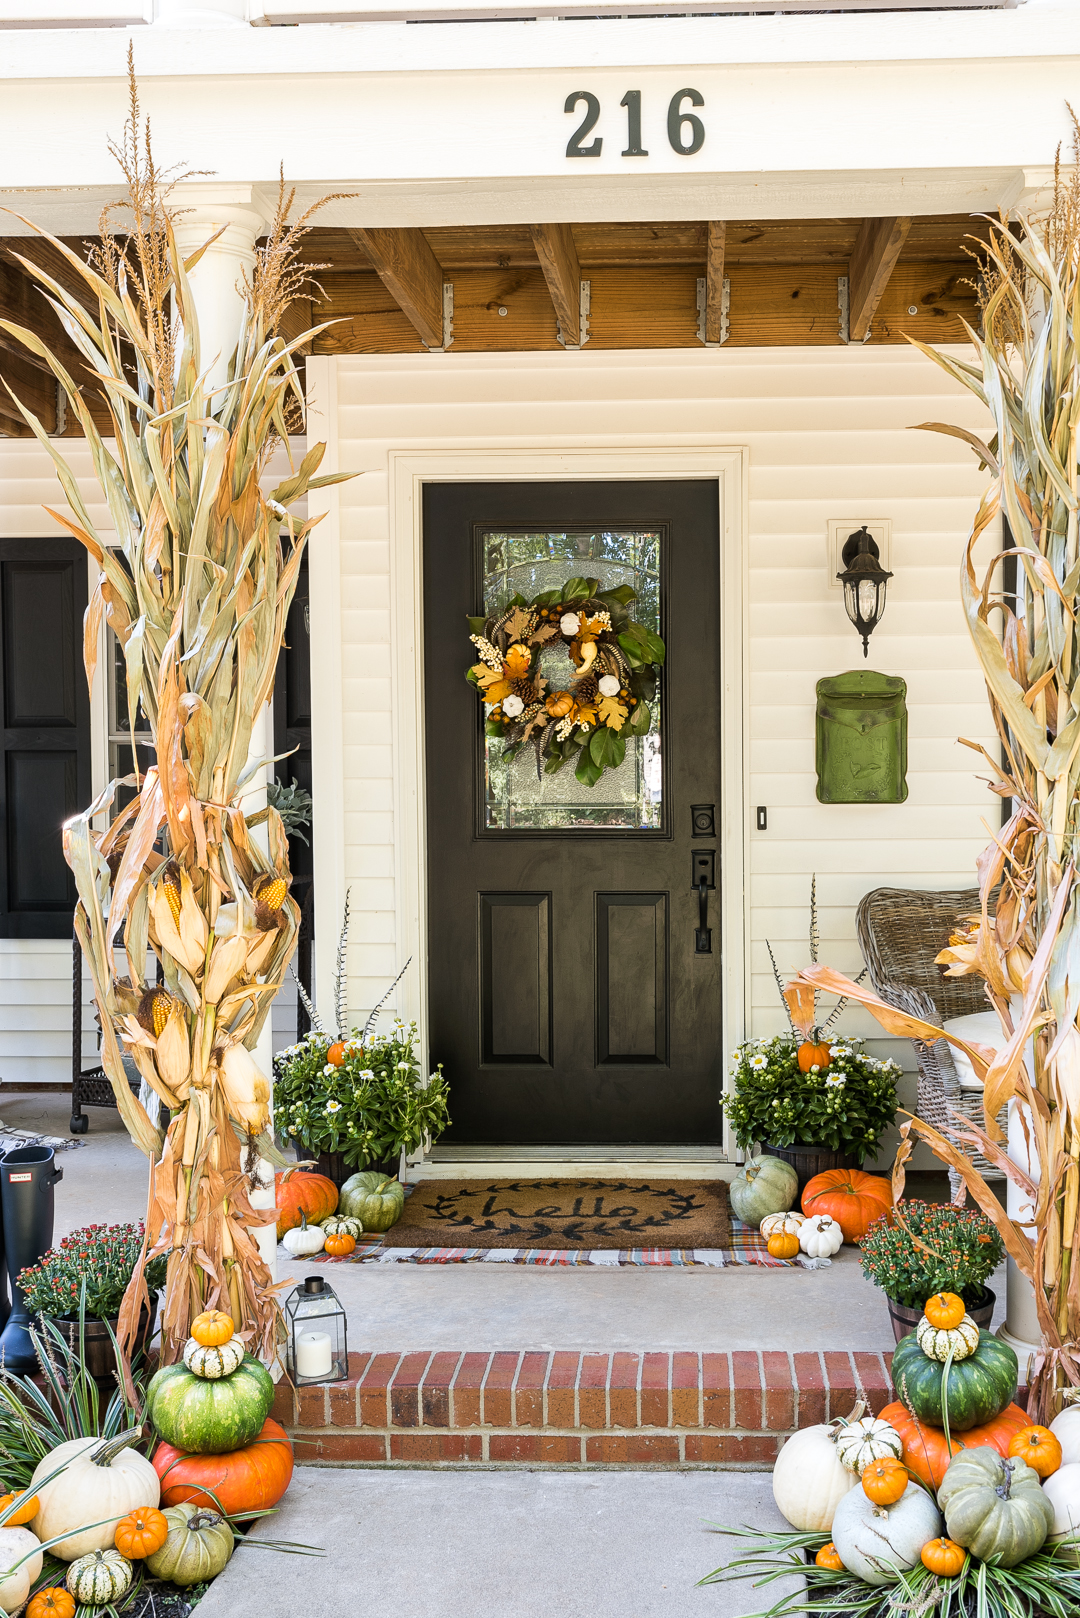 10 Beautiful Fall Porches - love the corn stalks and feathers in the planters kellyelko.com #fall #fallporch #falldecor #falldecorating #mums #pumpkins #fairylights #porch #frontporch #curbappeal #autummdecor #autummporch